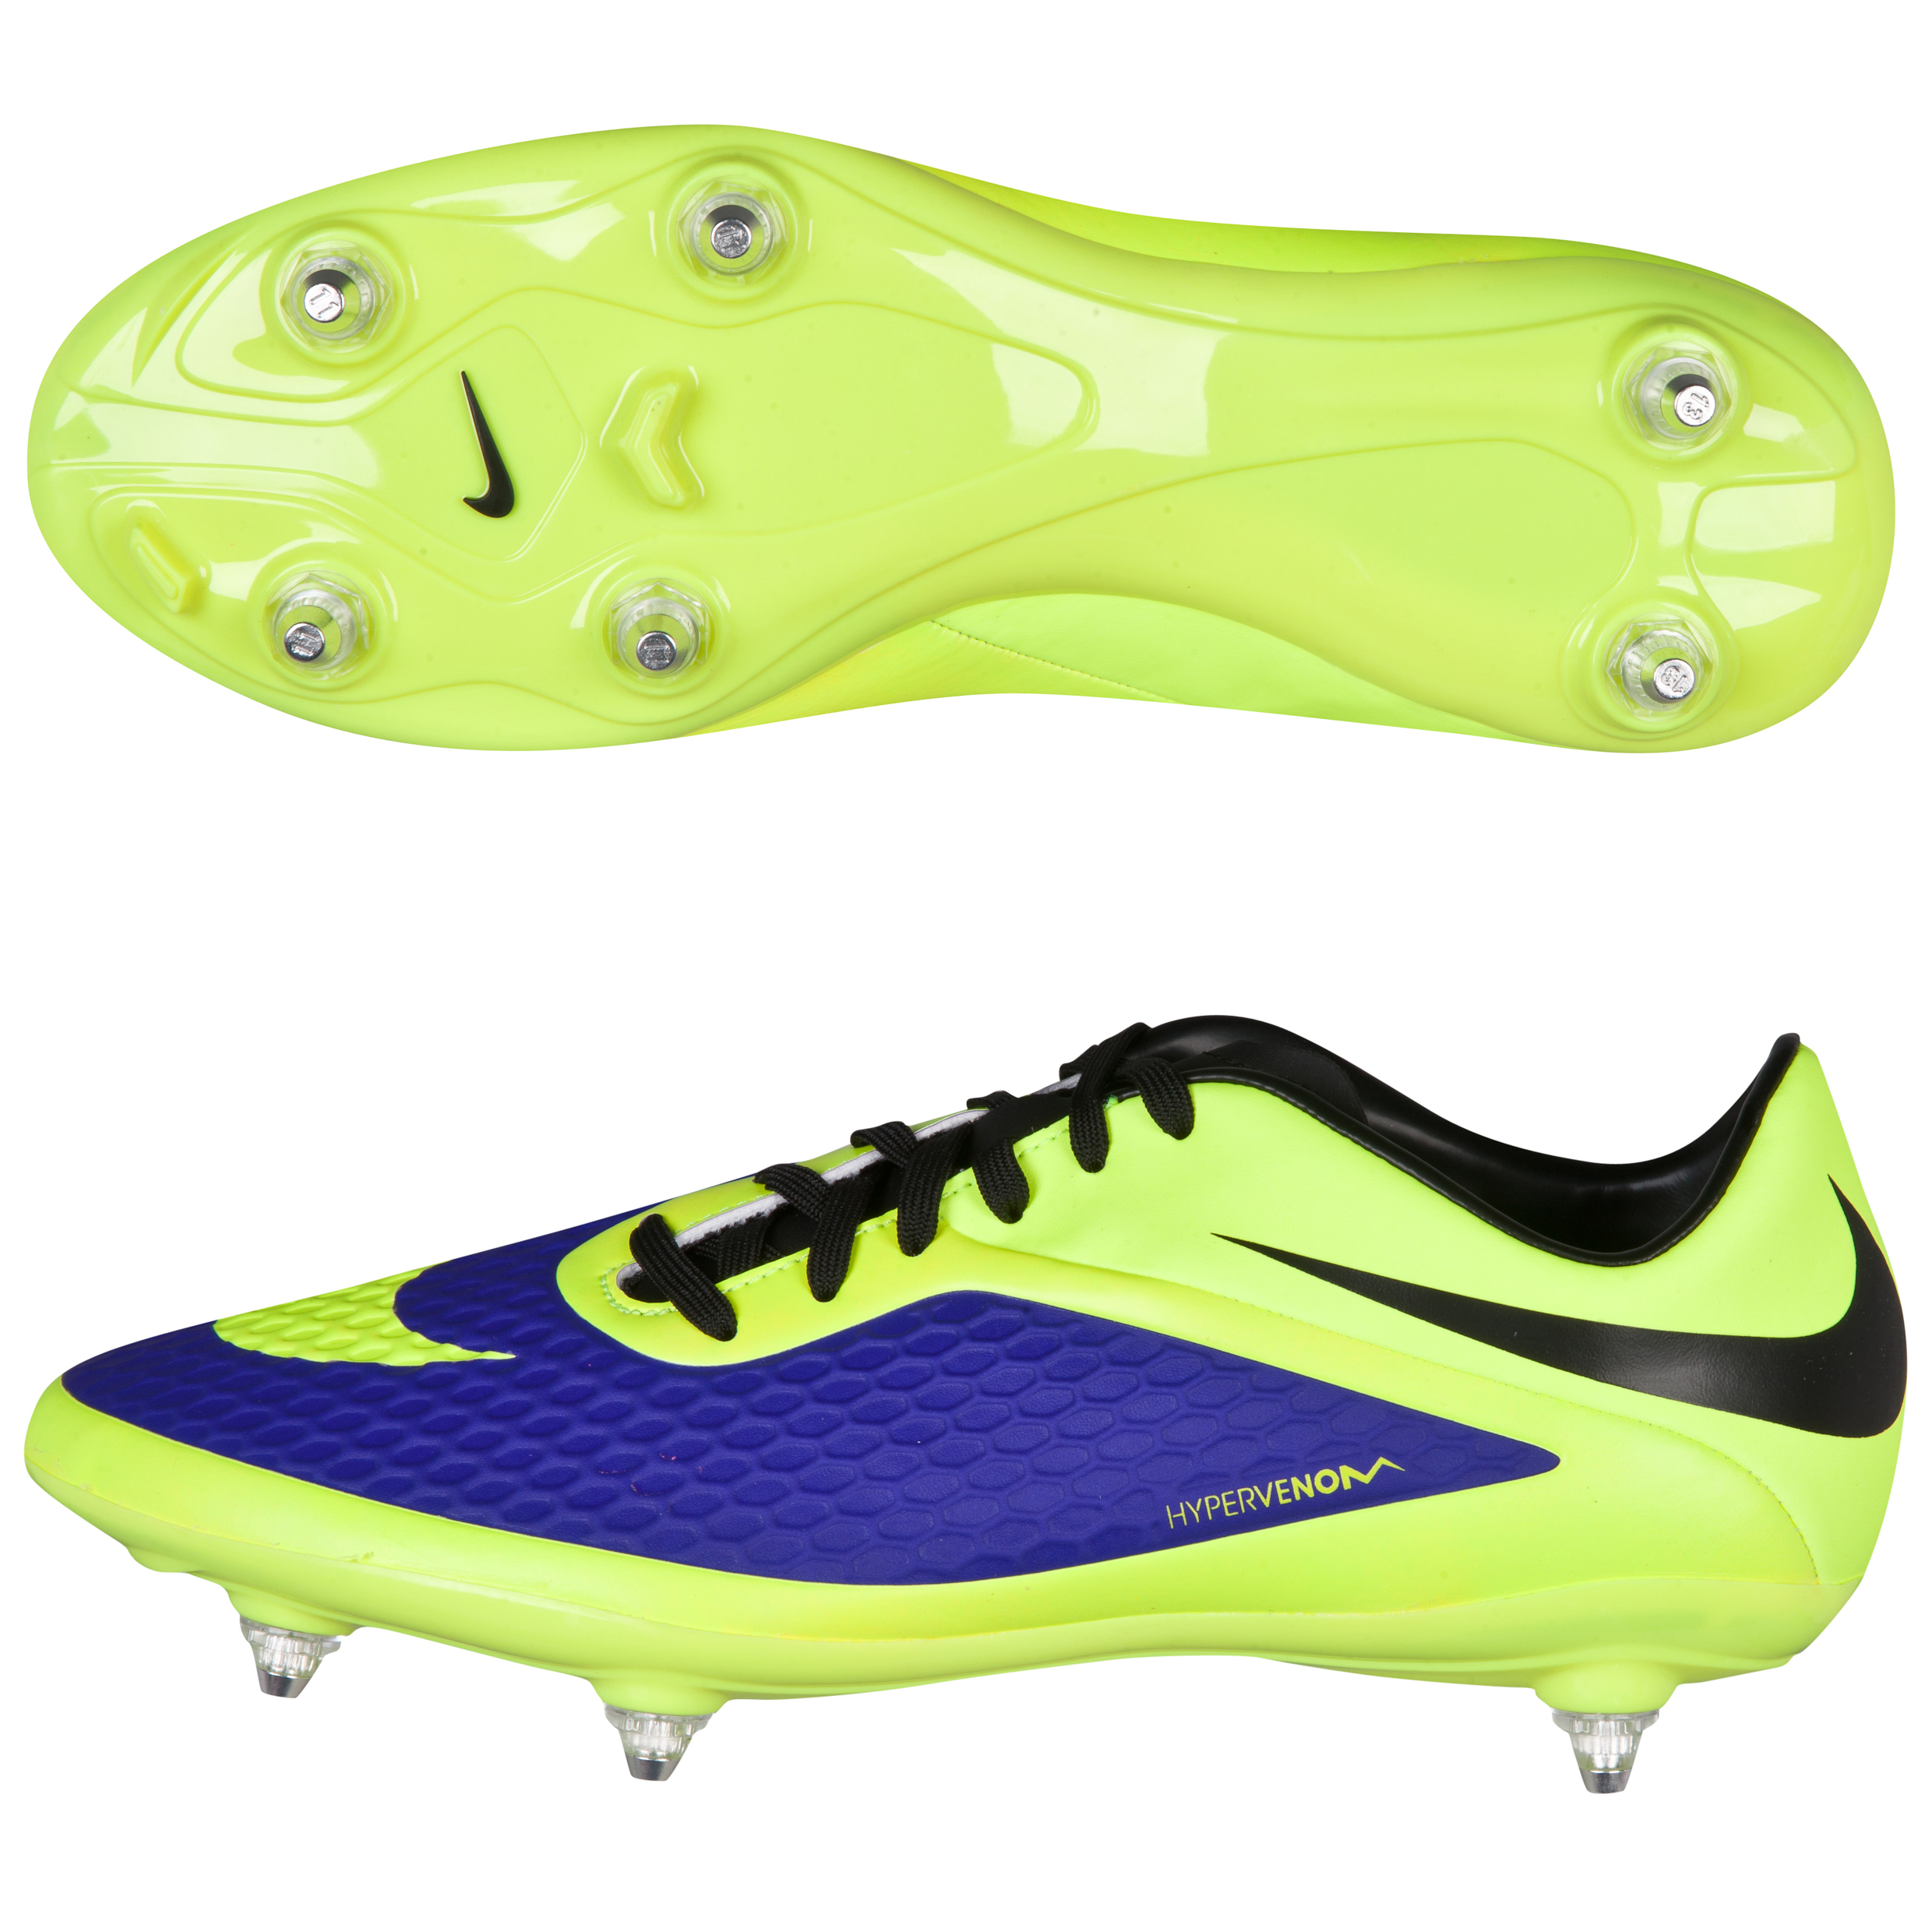 Nike Hypervenom Phelon Soft Ground Football Boots -Electro Purple/Volt/Black Purple